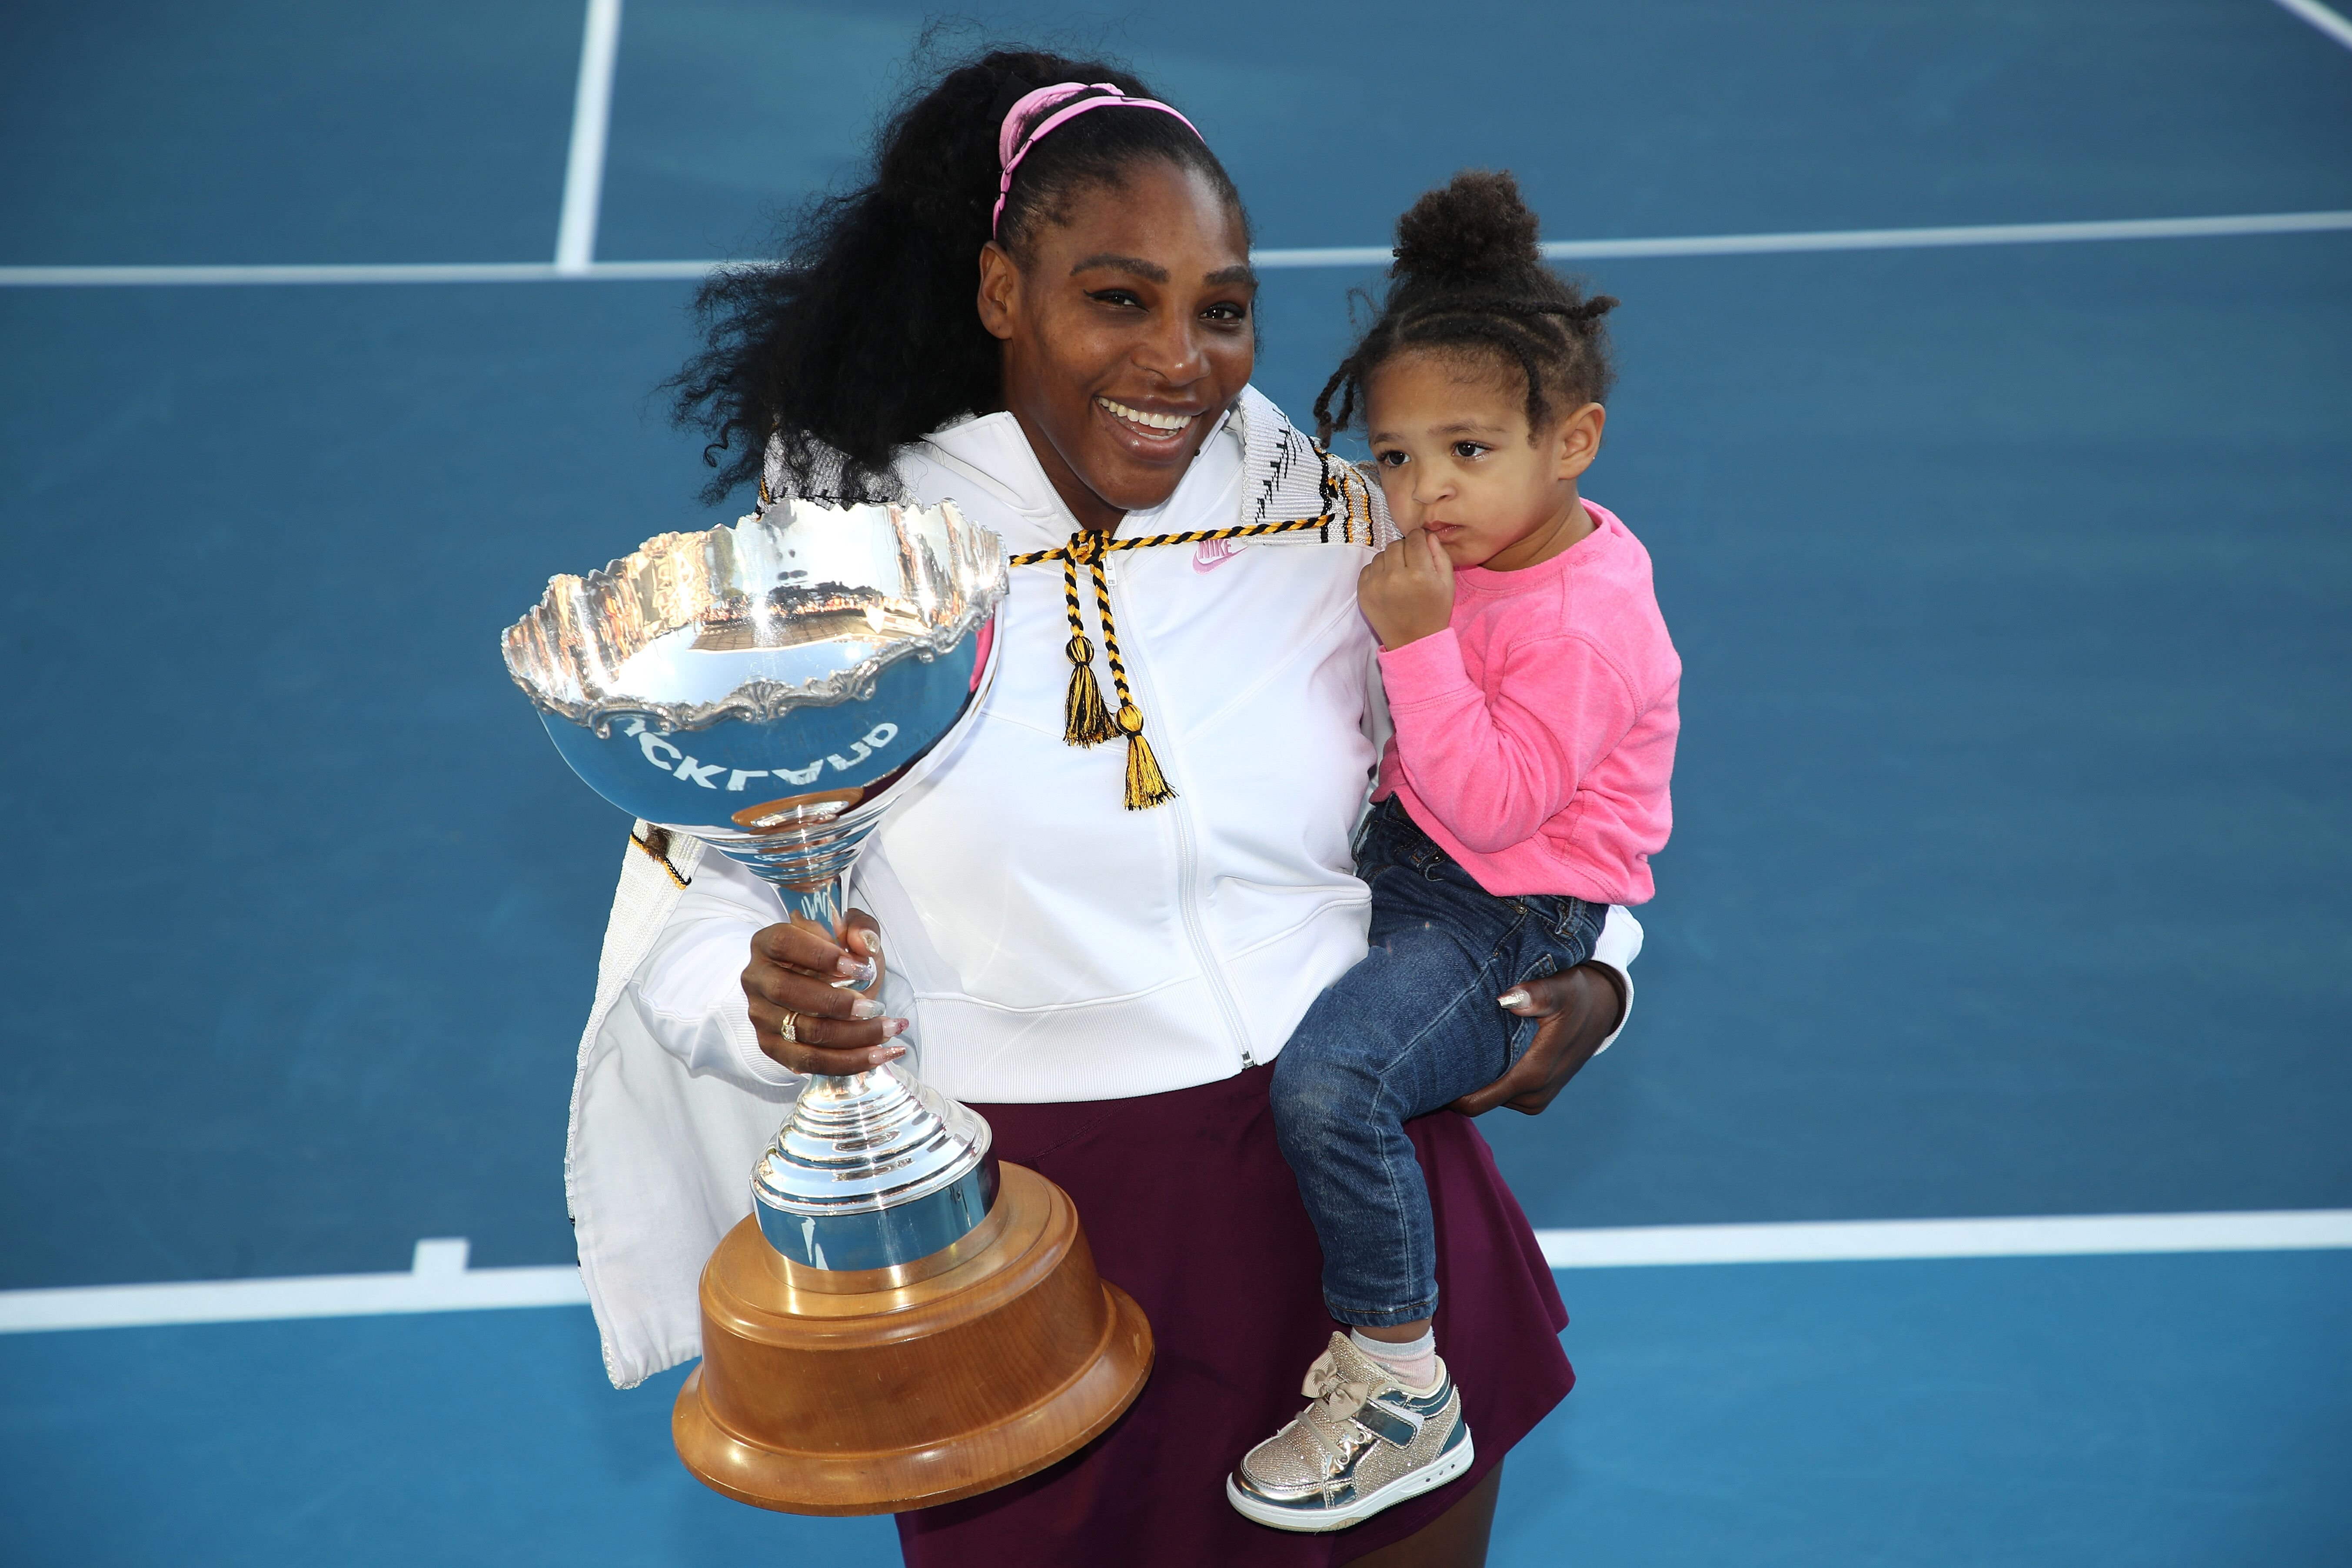 Serena Williams holds her daughter Alexis Olympia with the trophy following the Women's Final  at ASB Tennis Centre on January 12, 2020 in Auckland, New Zealand. | Source: Getty Images